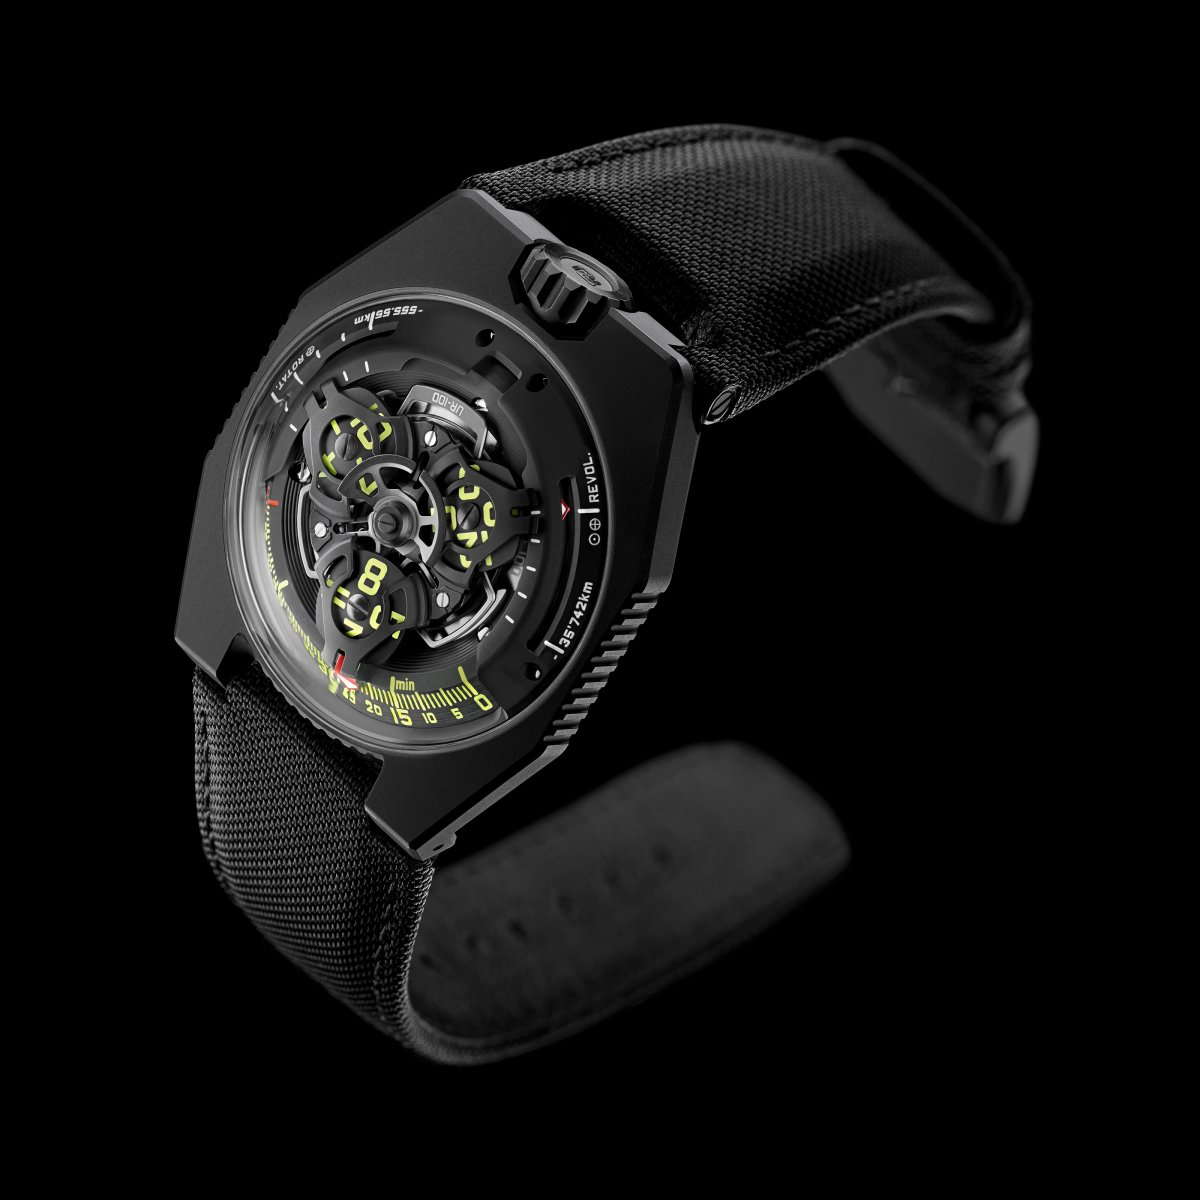 https://www.urwerk.com/sites/default/files/styles/square_ps/public/gallery/black-2.jpg?itok=ZoHspNsl